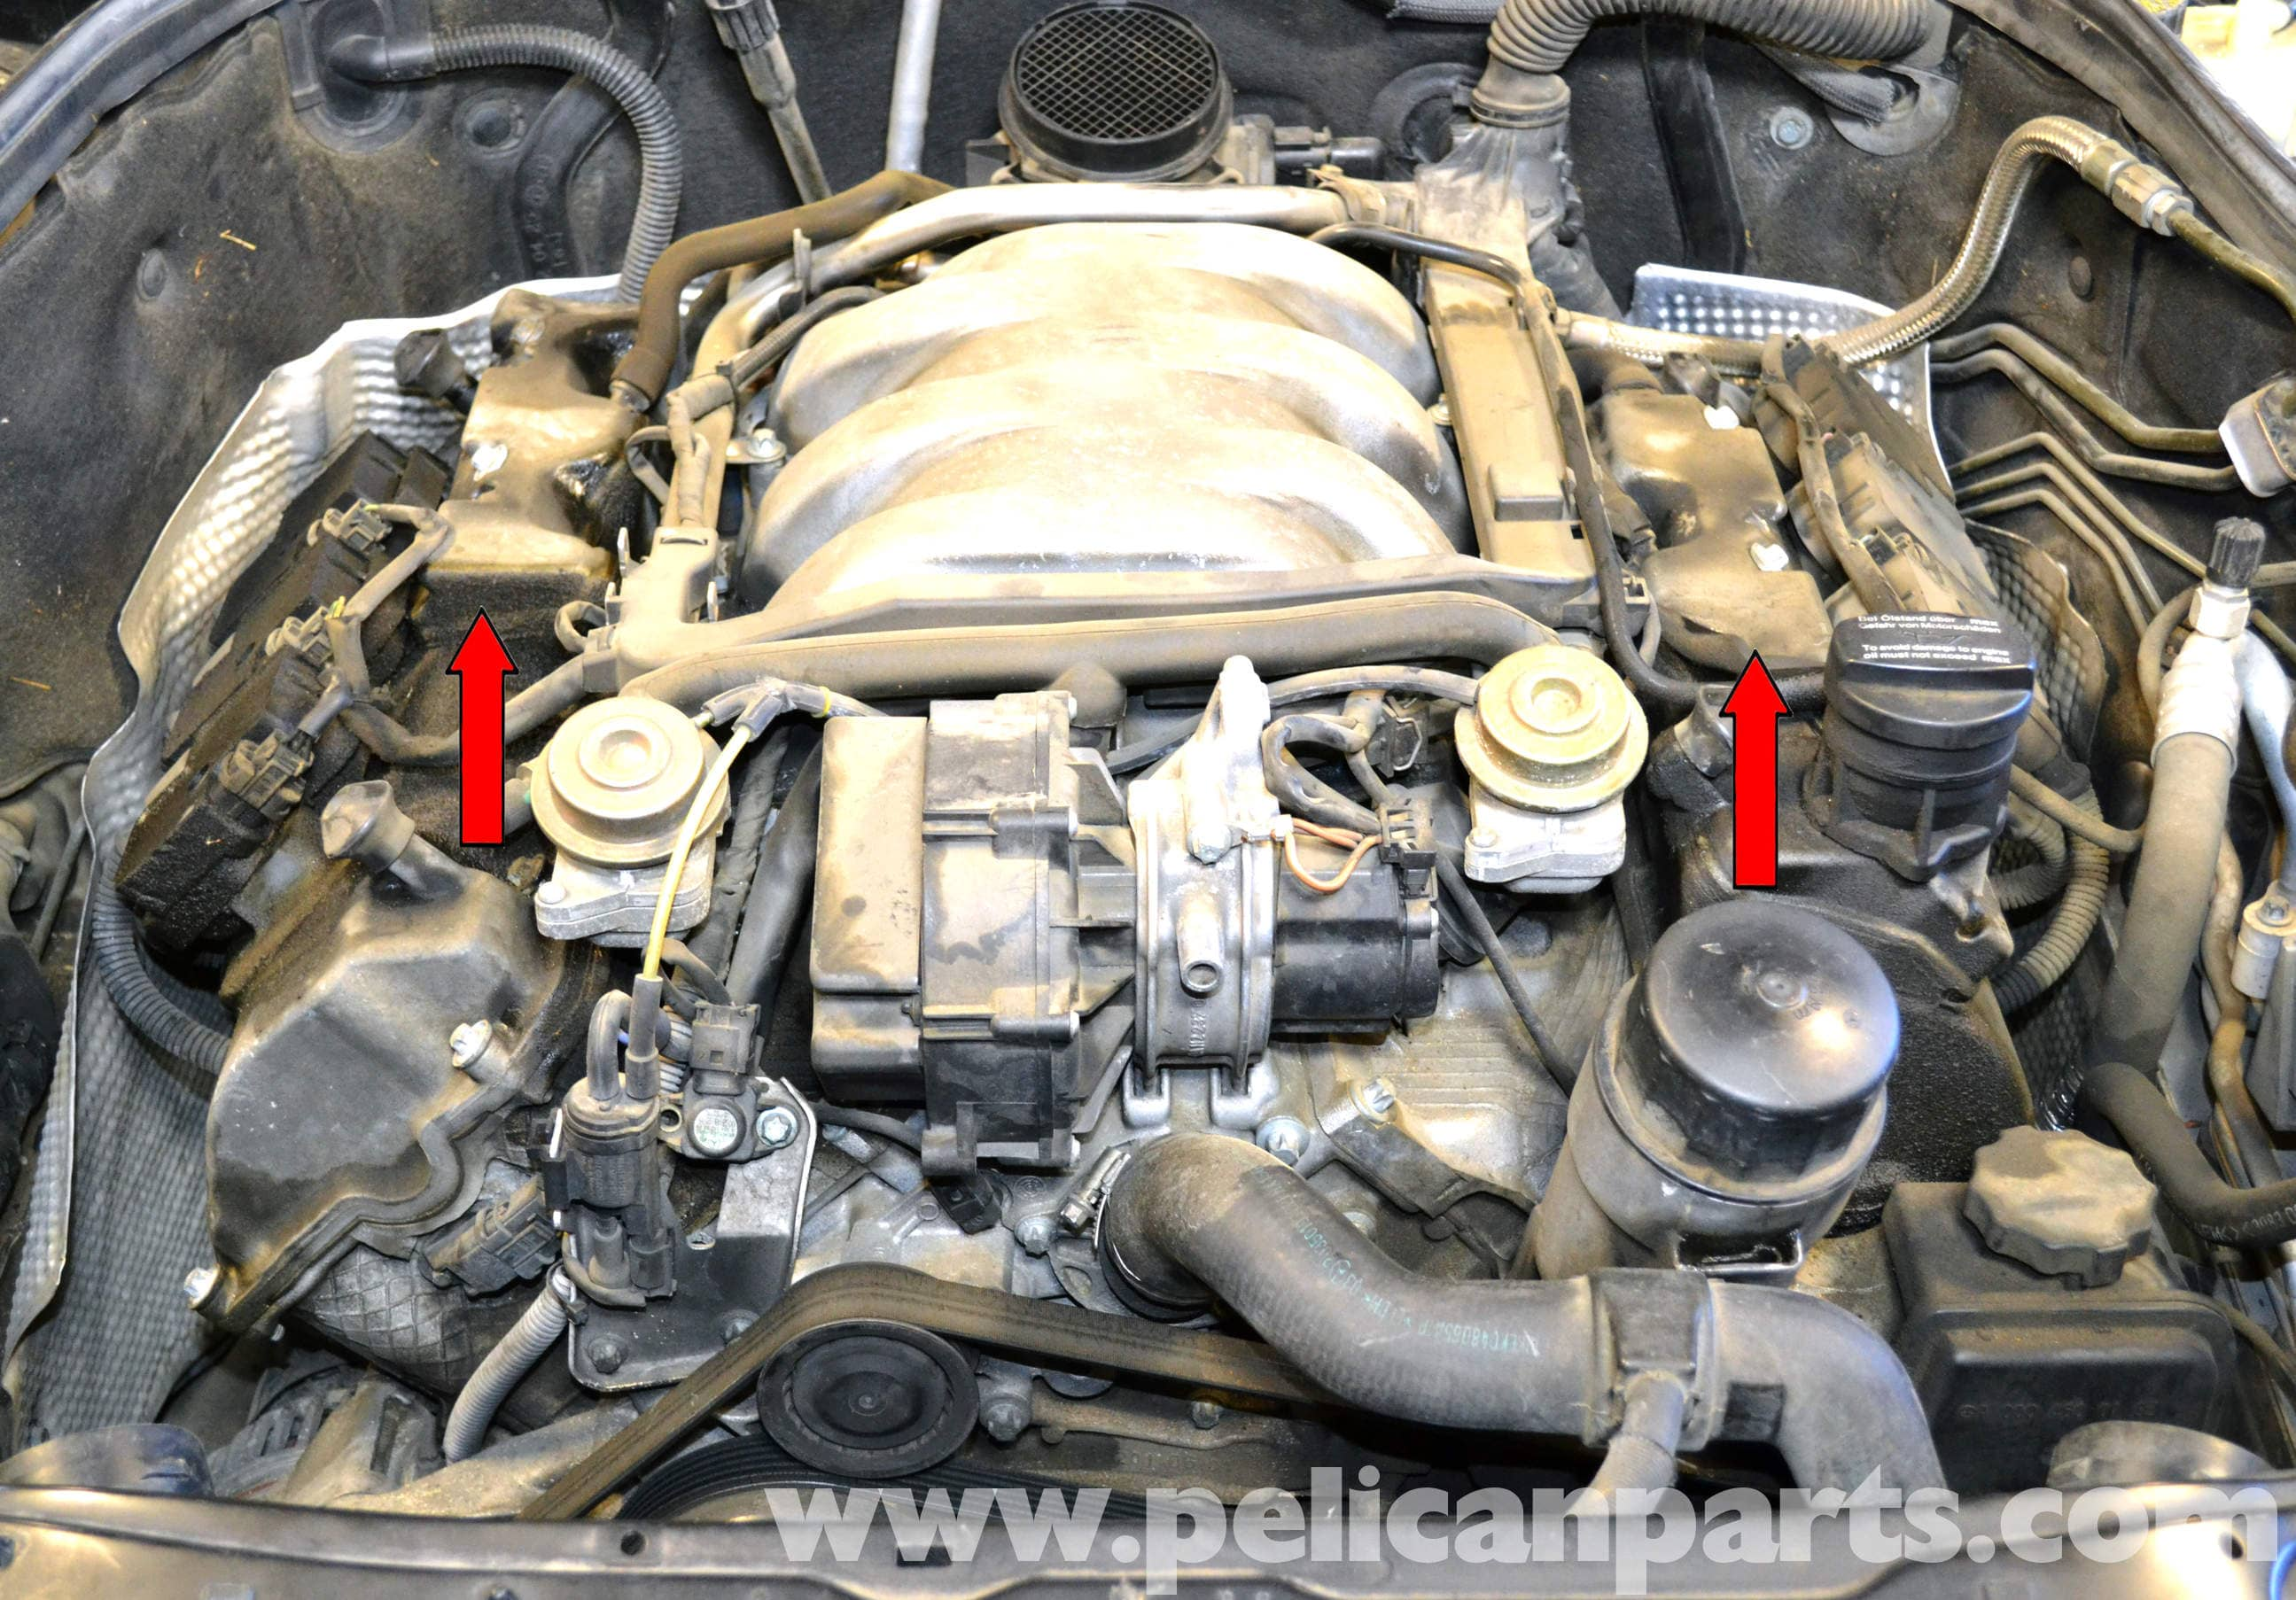 Mercedes Benz W203 Spark Plug And Coil Replacement 2001